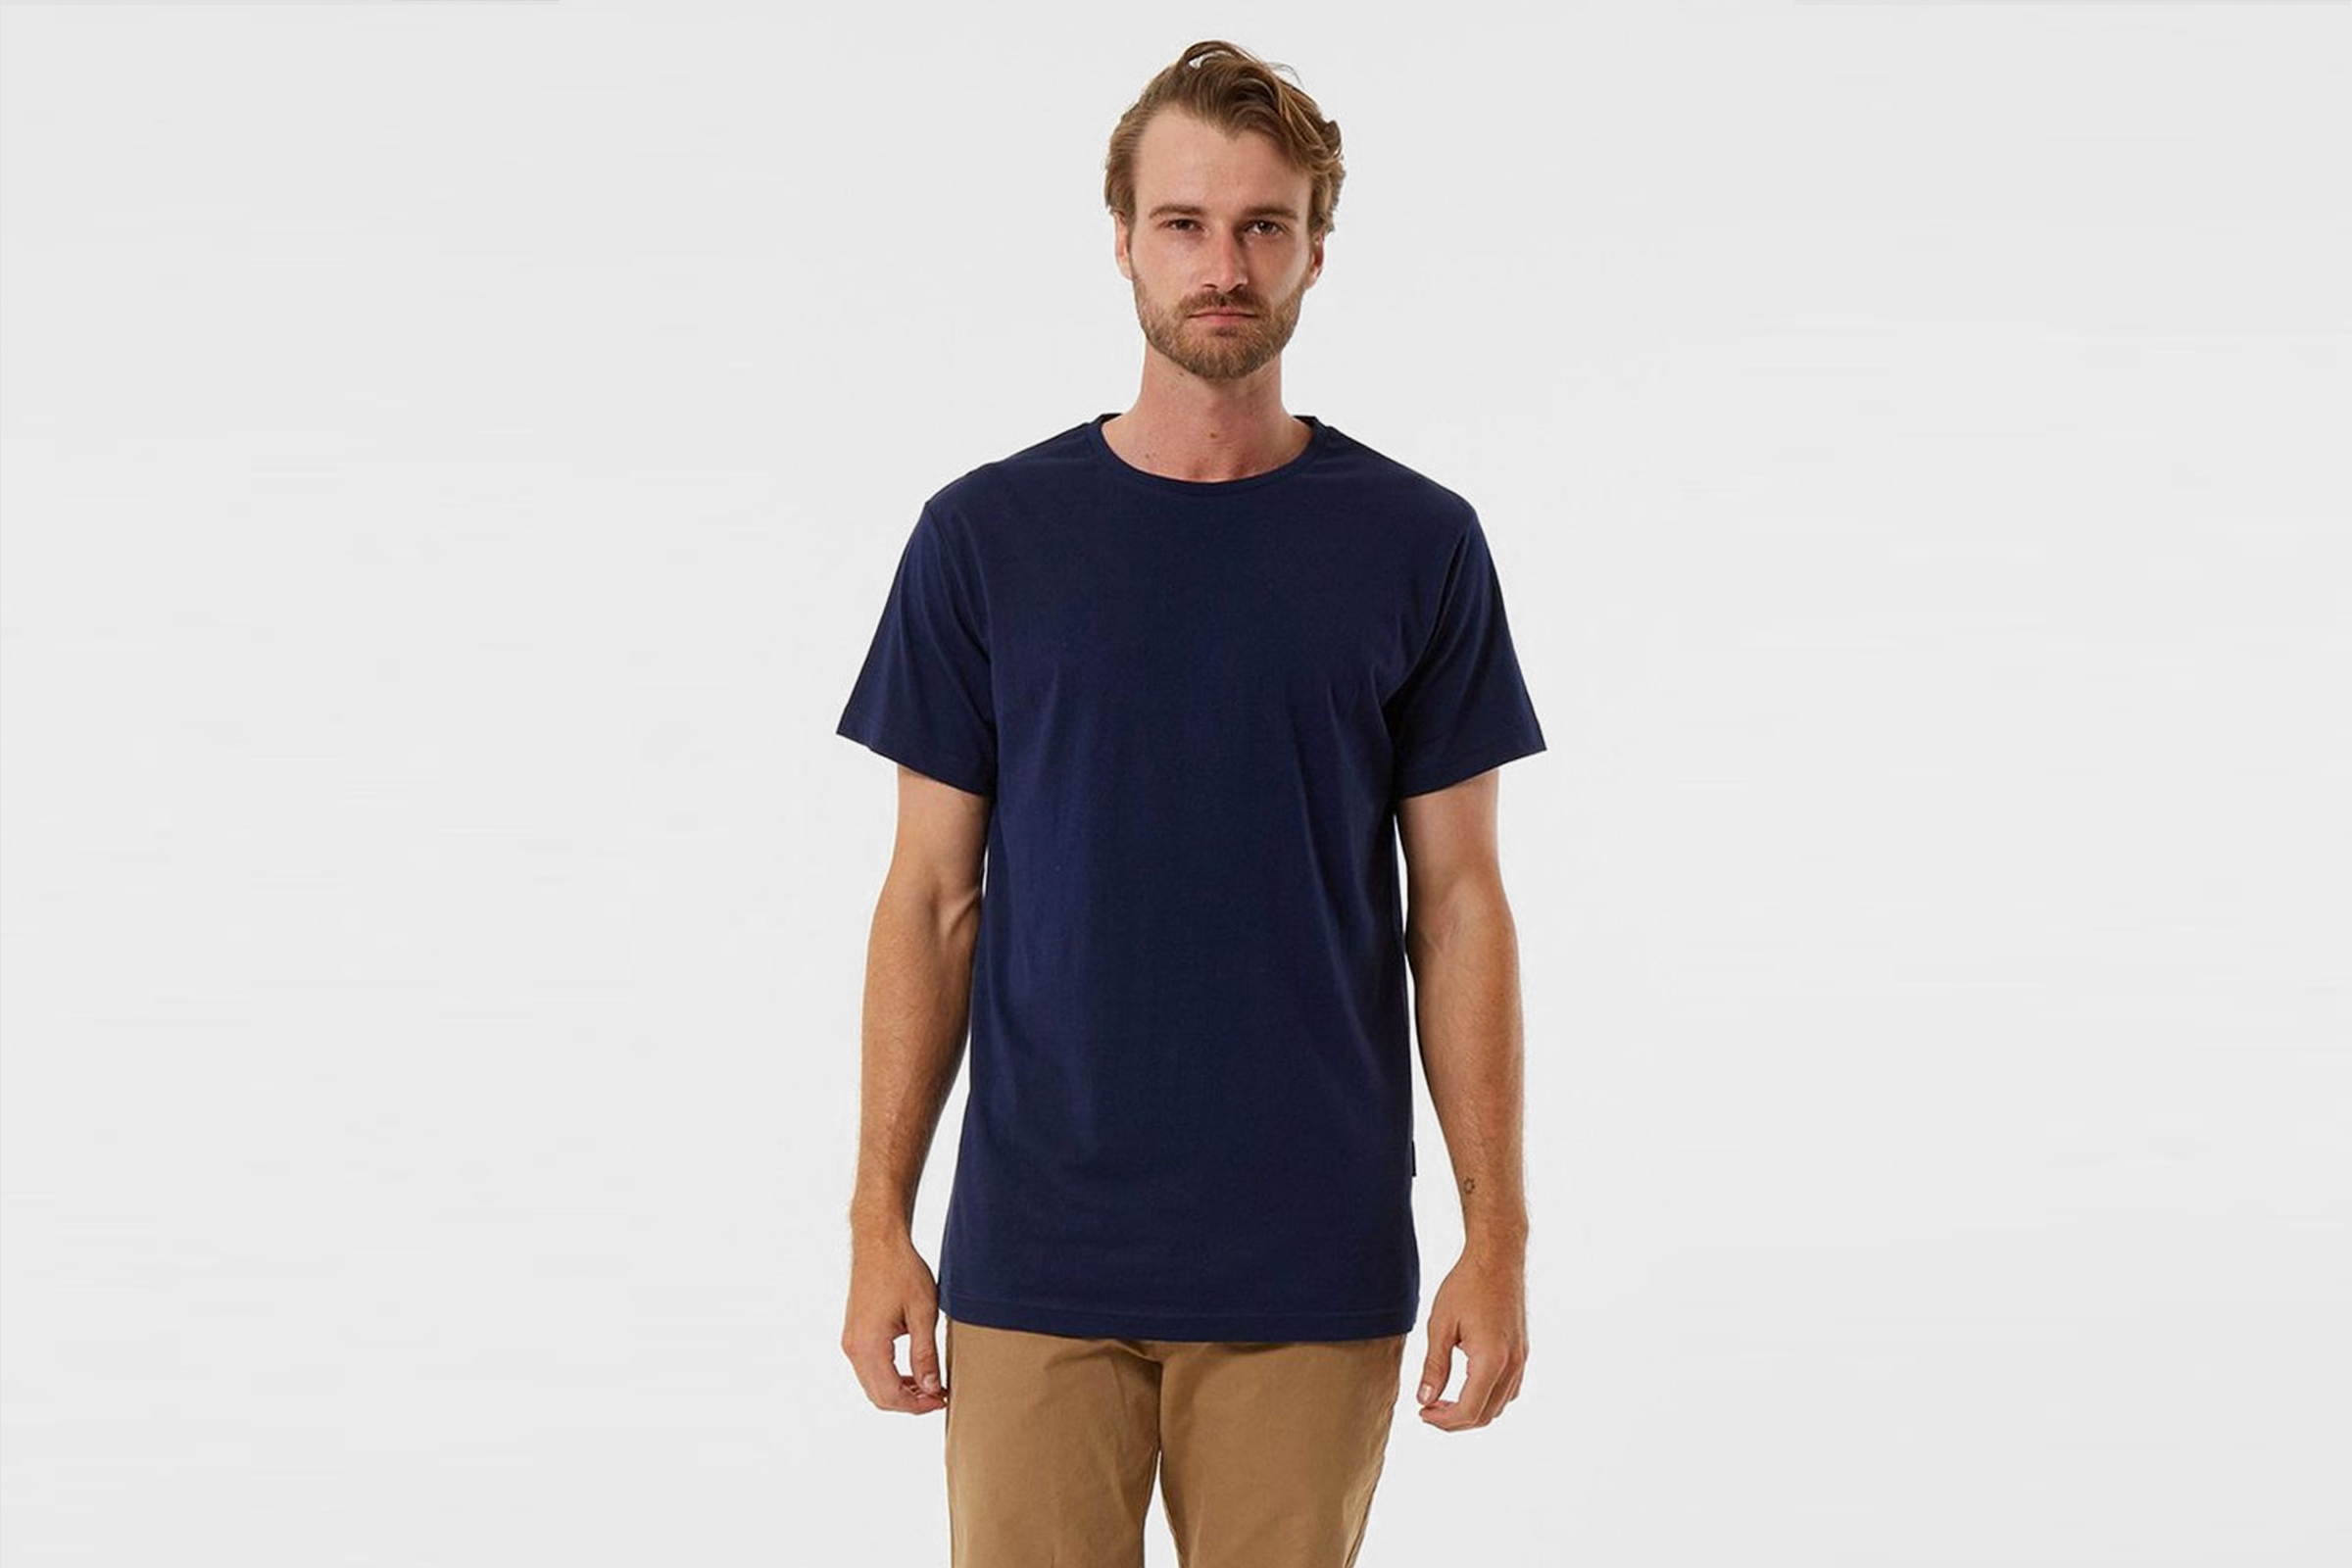 Men's Basic Tees MR SIMPLE